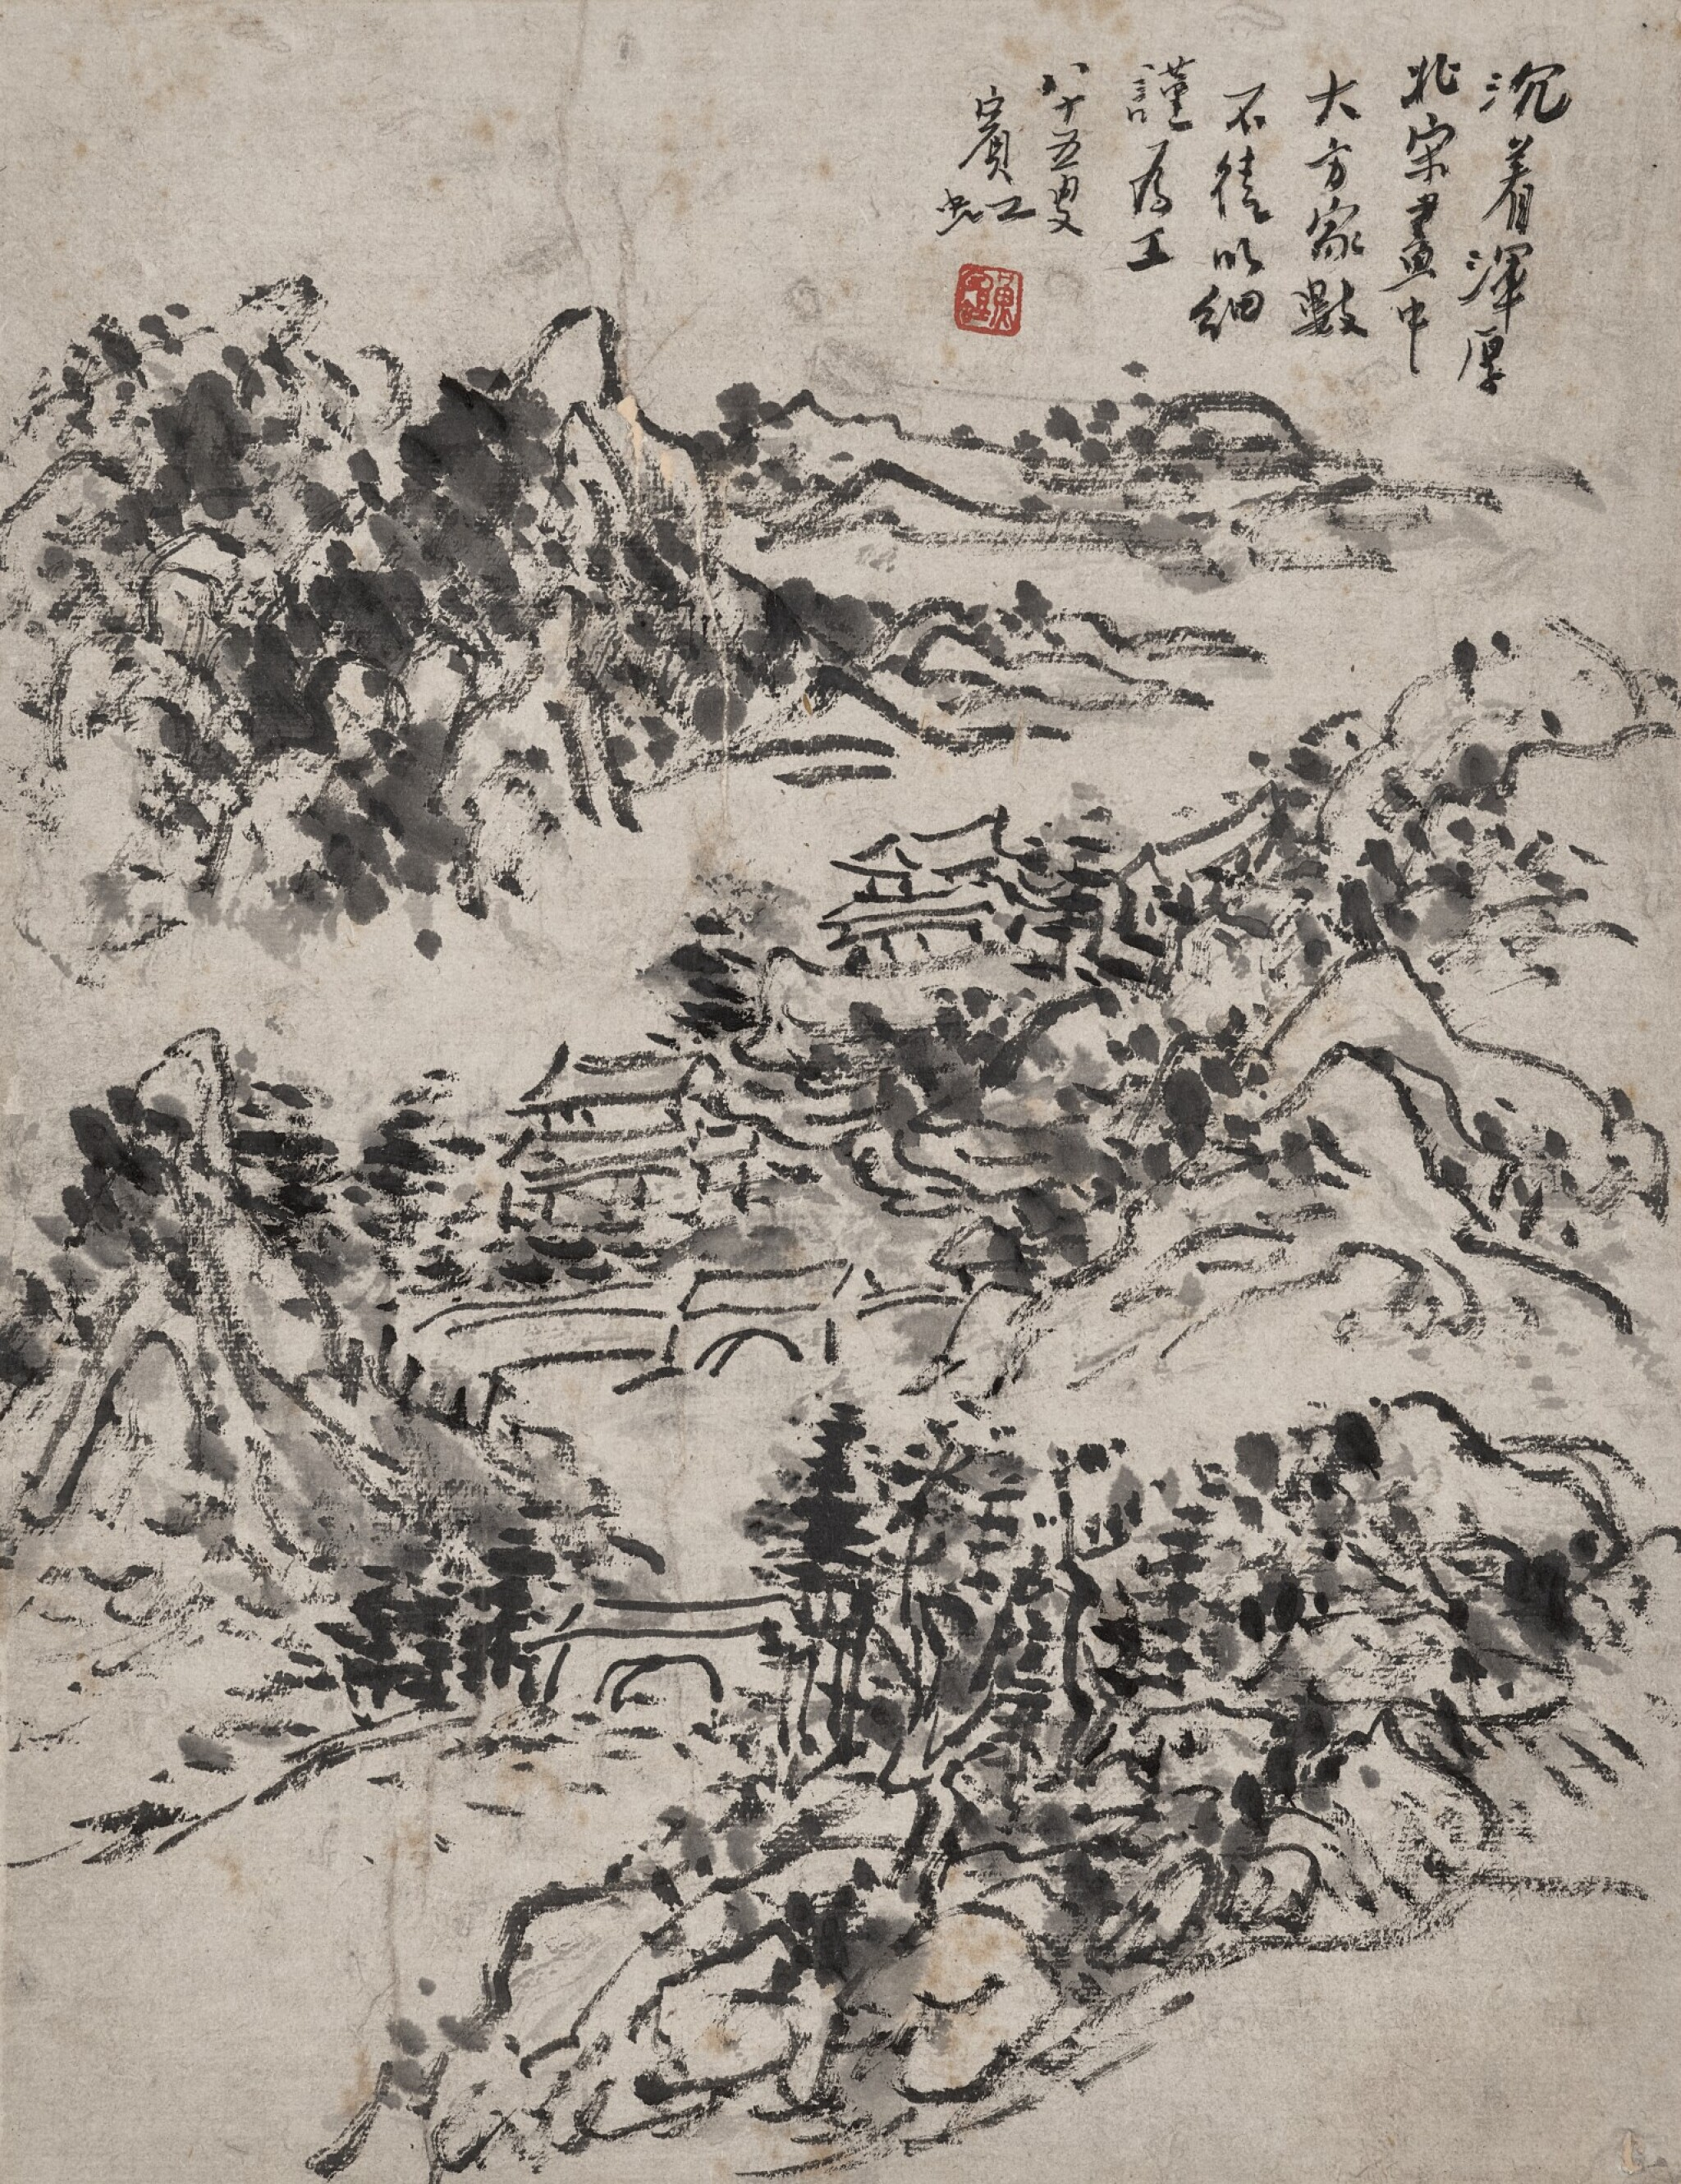 View full screen - View 1 of Lot 2563. Huang Binhong 黃賓虹  | Landscape After Northern Song Master  枯墨山水.